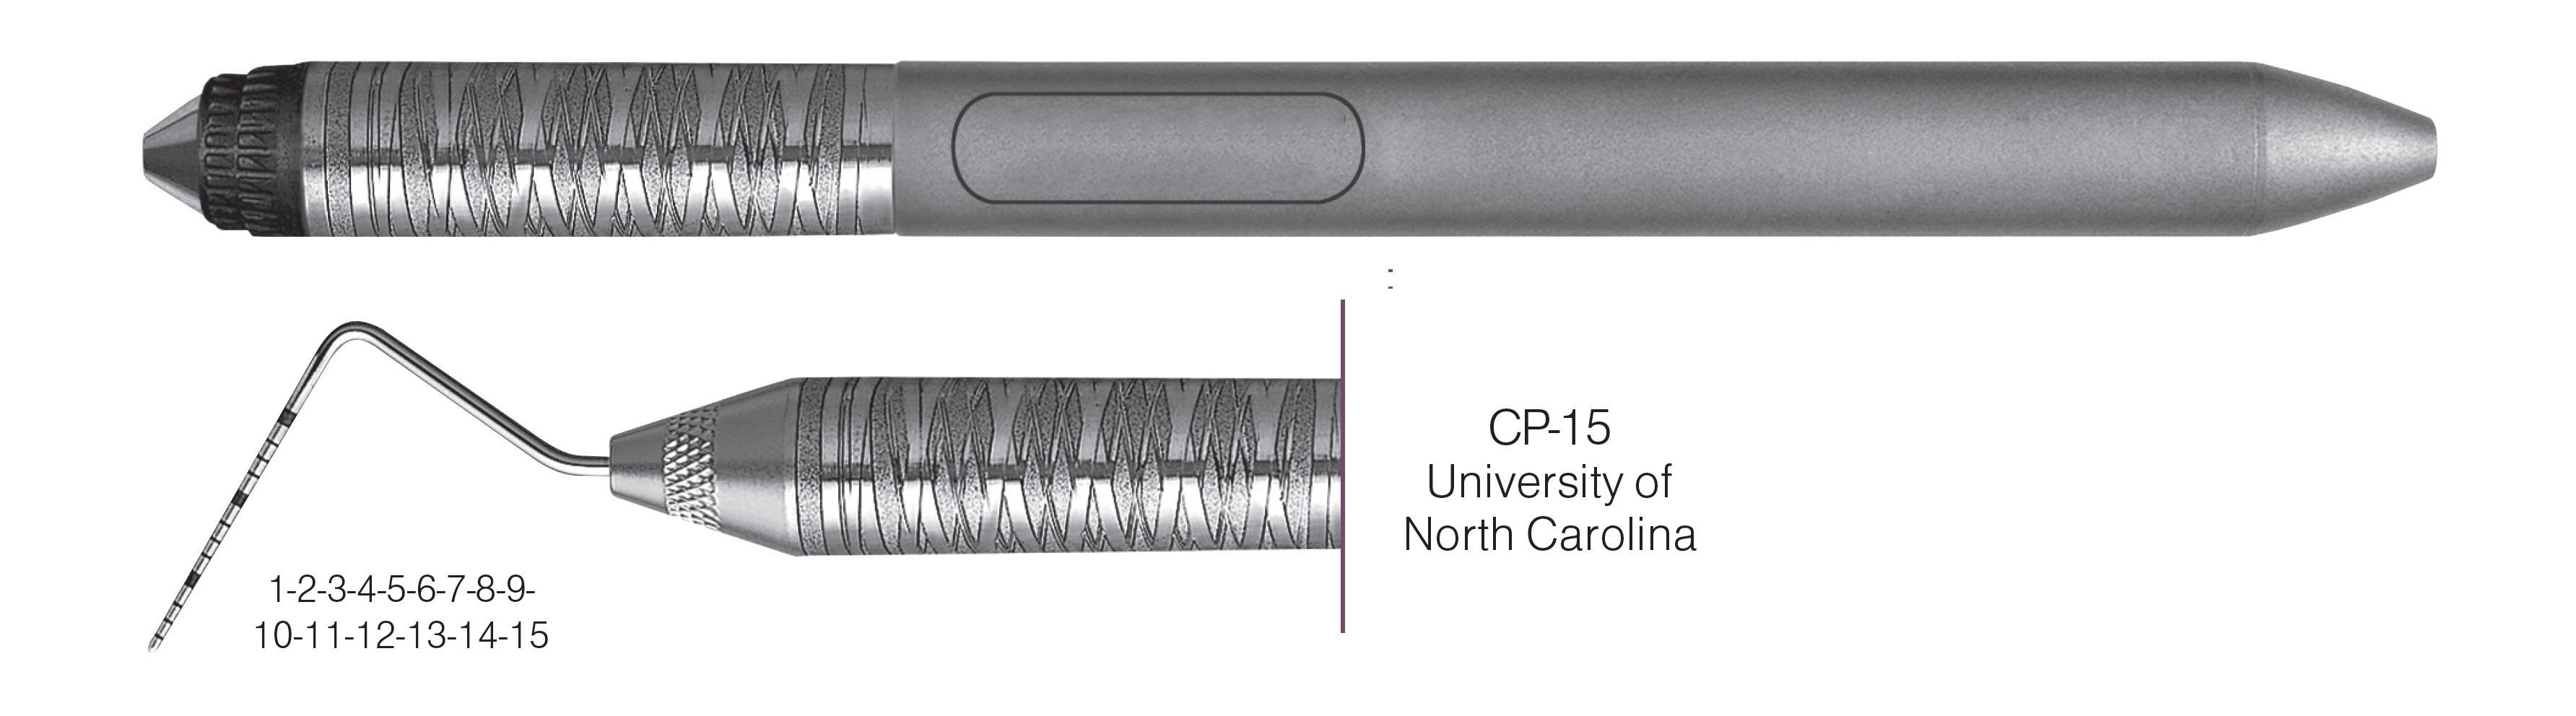 HF-PCPUNC156-7, COLOR-CODED PROBES CP-15 University of North Carolina, Black markings, 1-2-3-4-5-6-7-8-9-10-11-12-13-14-15 mm, Handle Satin Steel Colours, Aluminum Titanium Nitride (AlTiN) coating, Single End